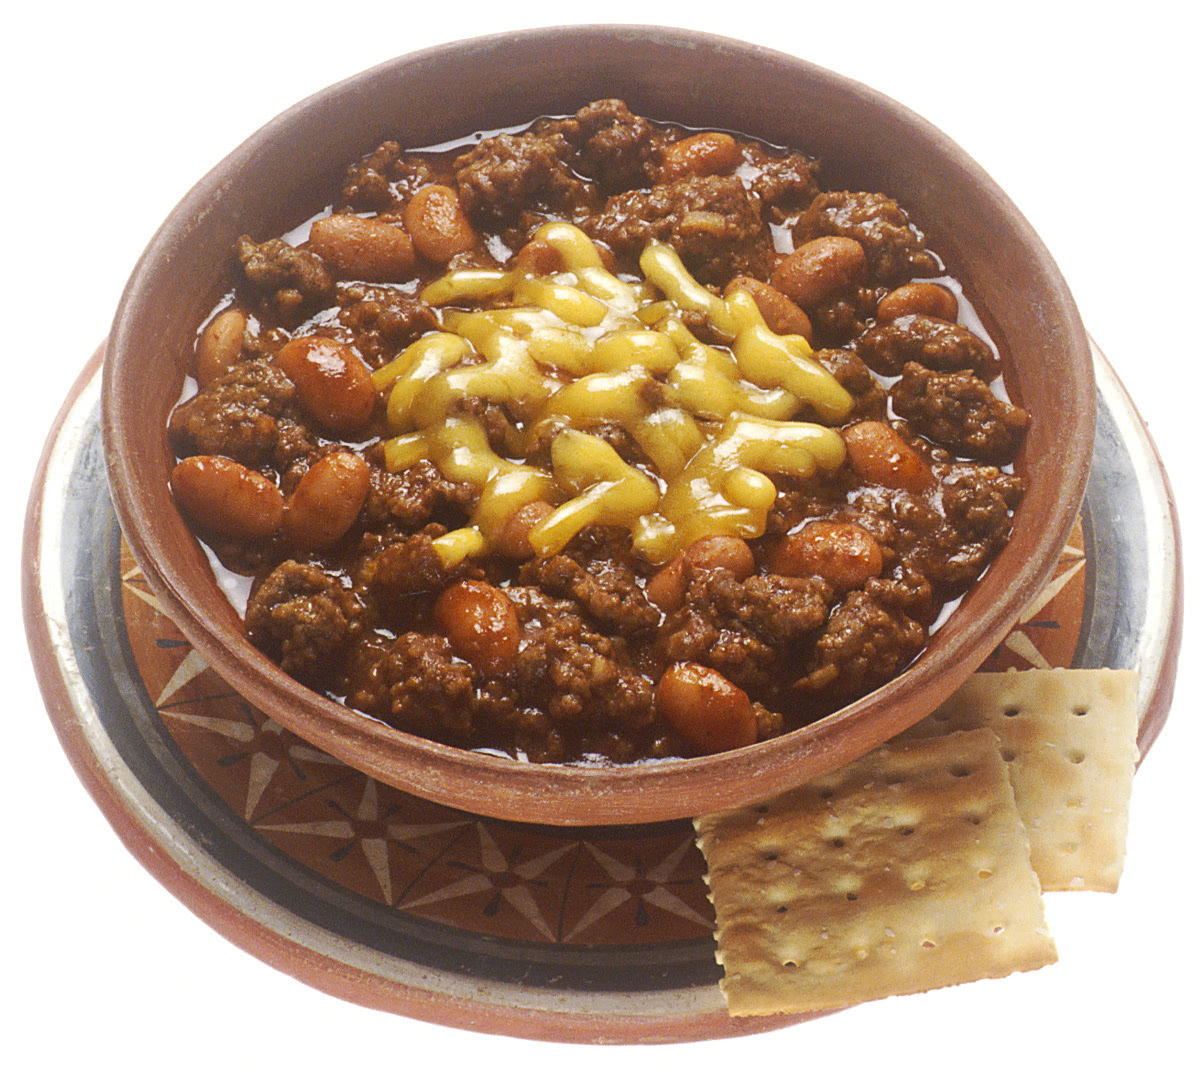 bowl of chili large